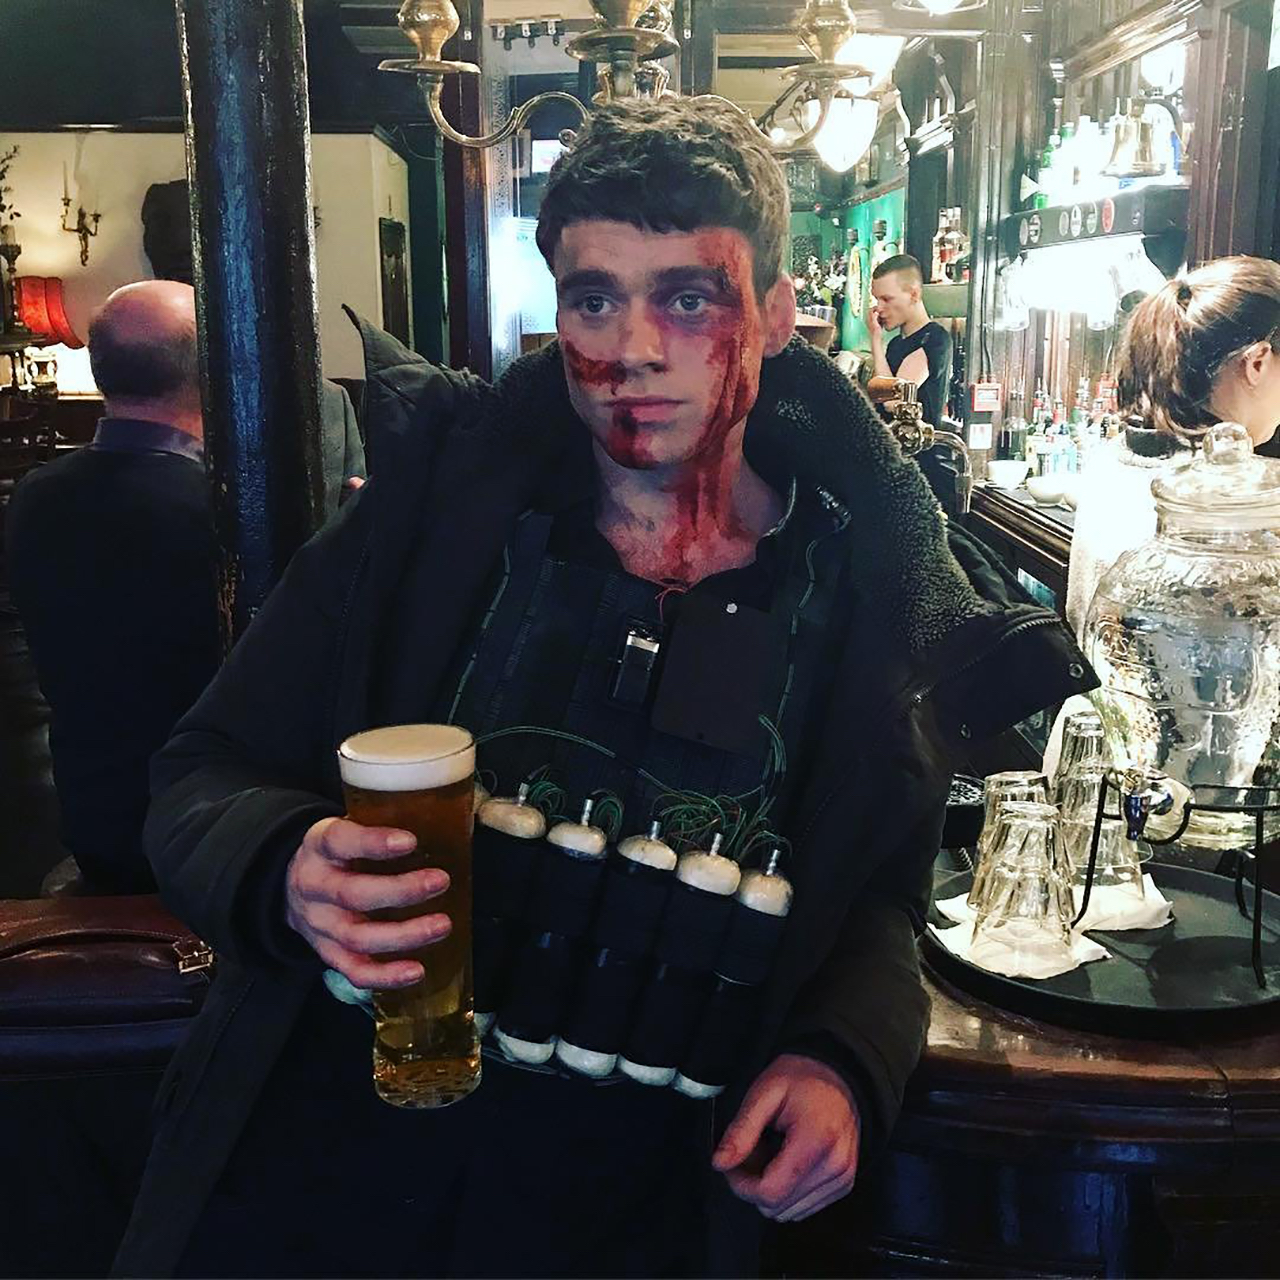 Bloody face Richard Madden beer body bombs